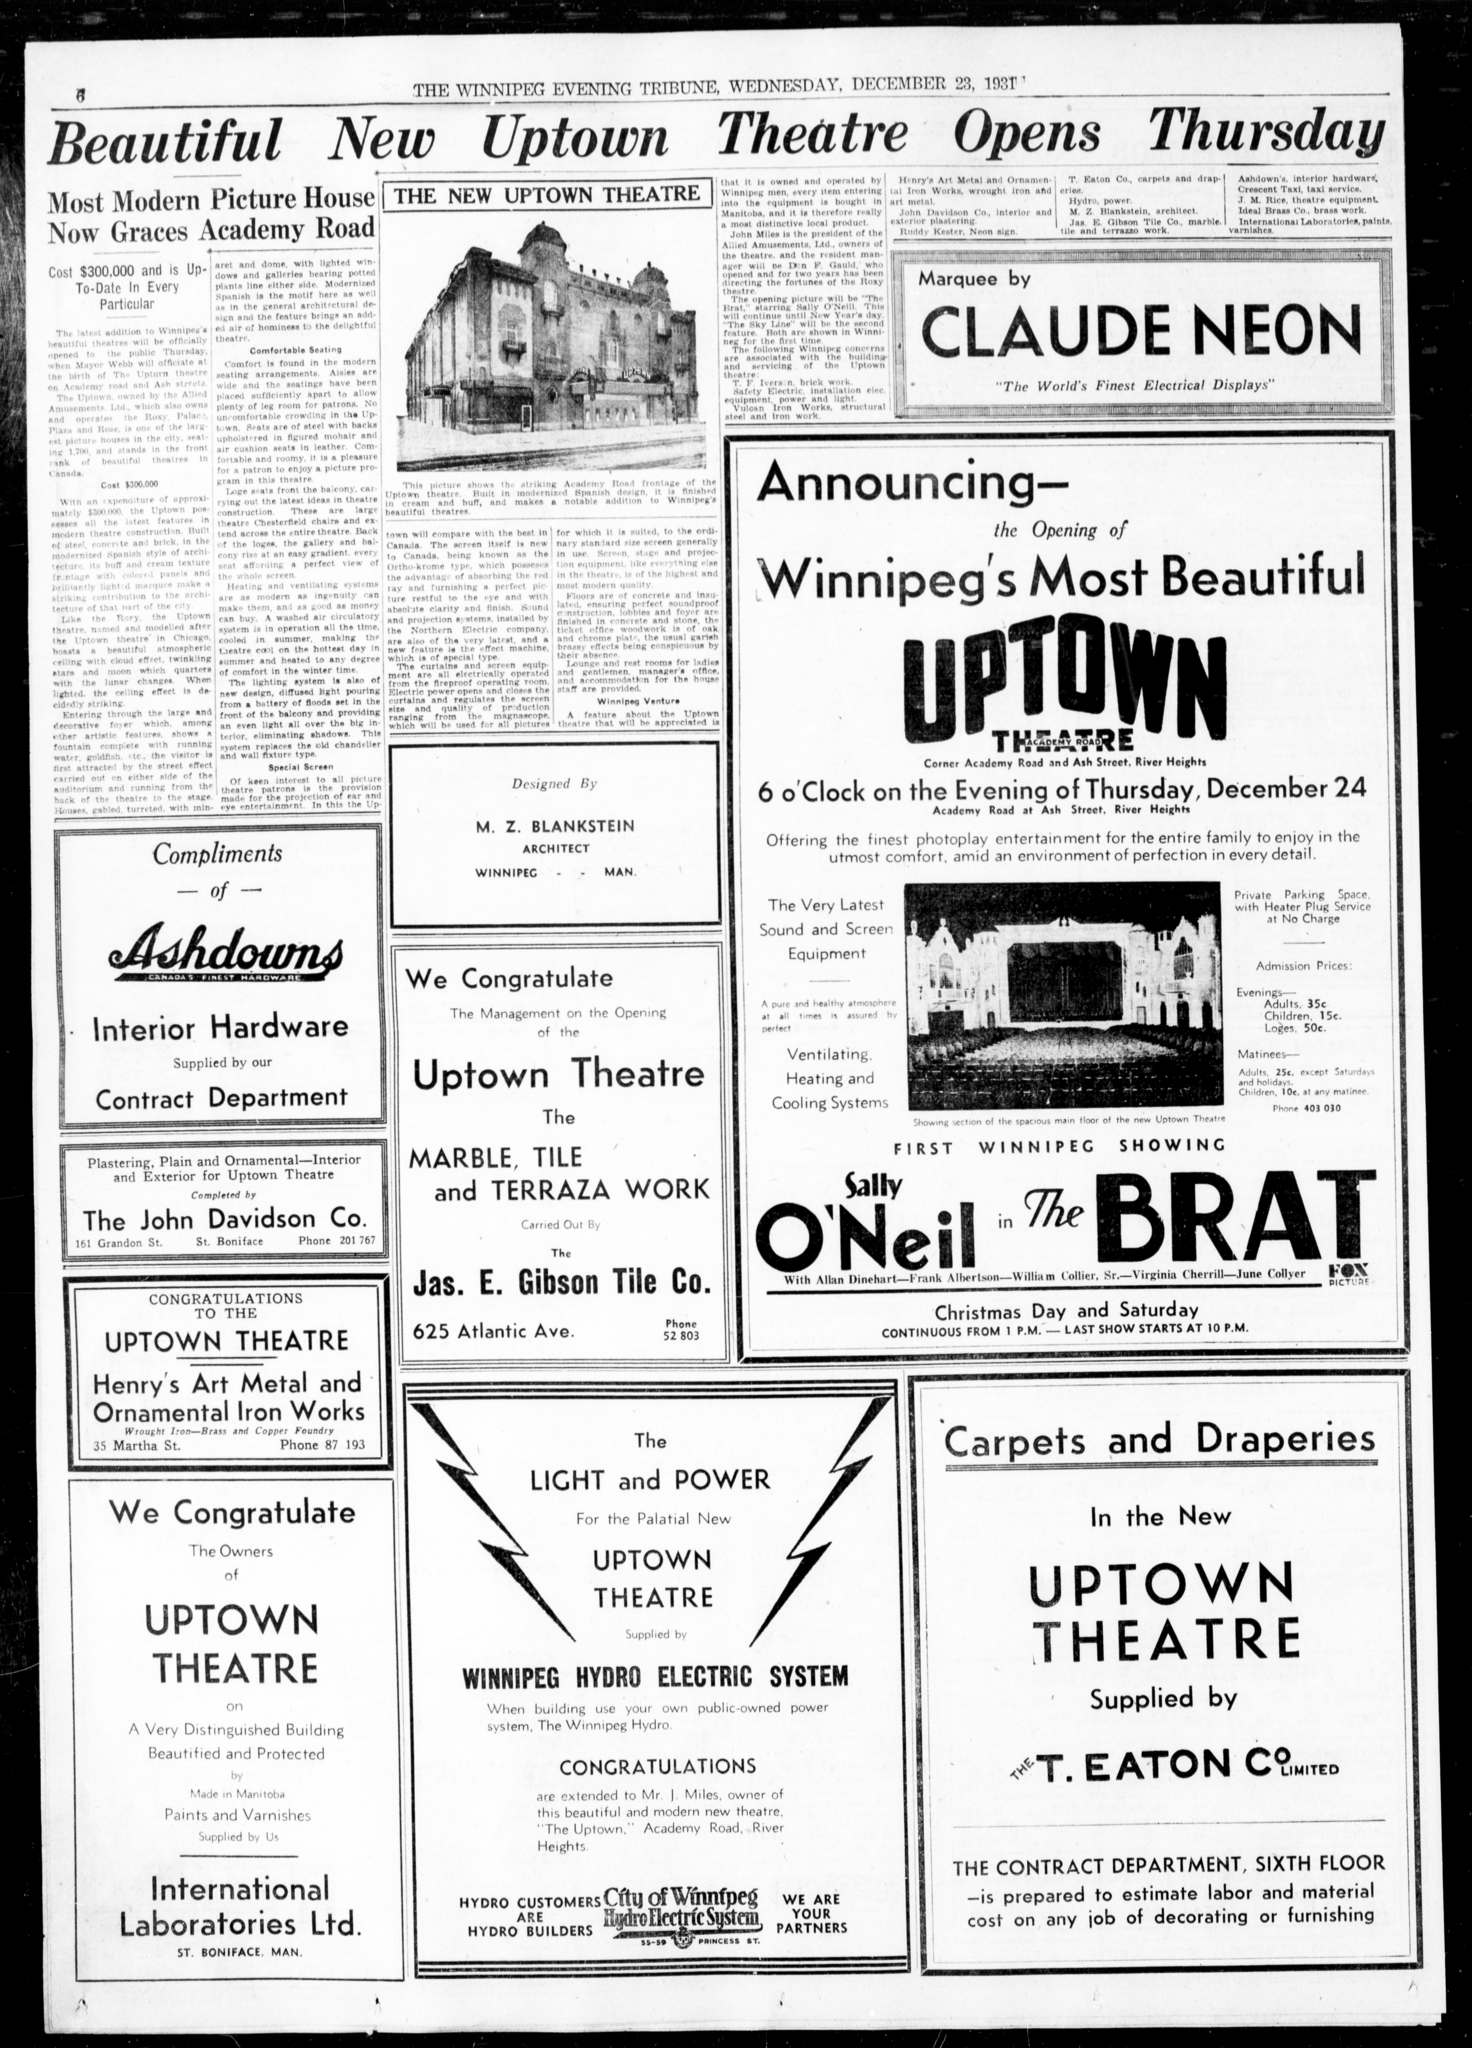 An article and advertisement in the Dec. 23, 1931 Winnipeg Tribune announce the opening of Uptown Theatre.</p>